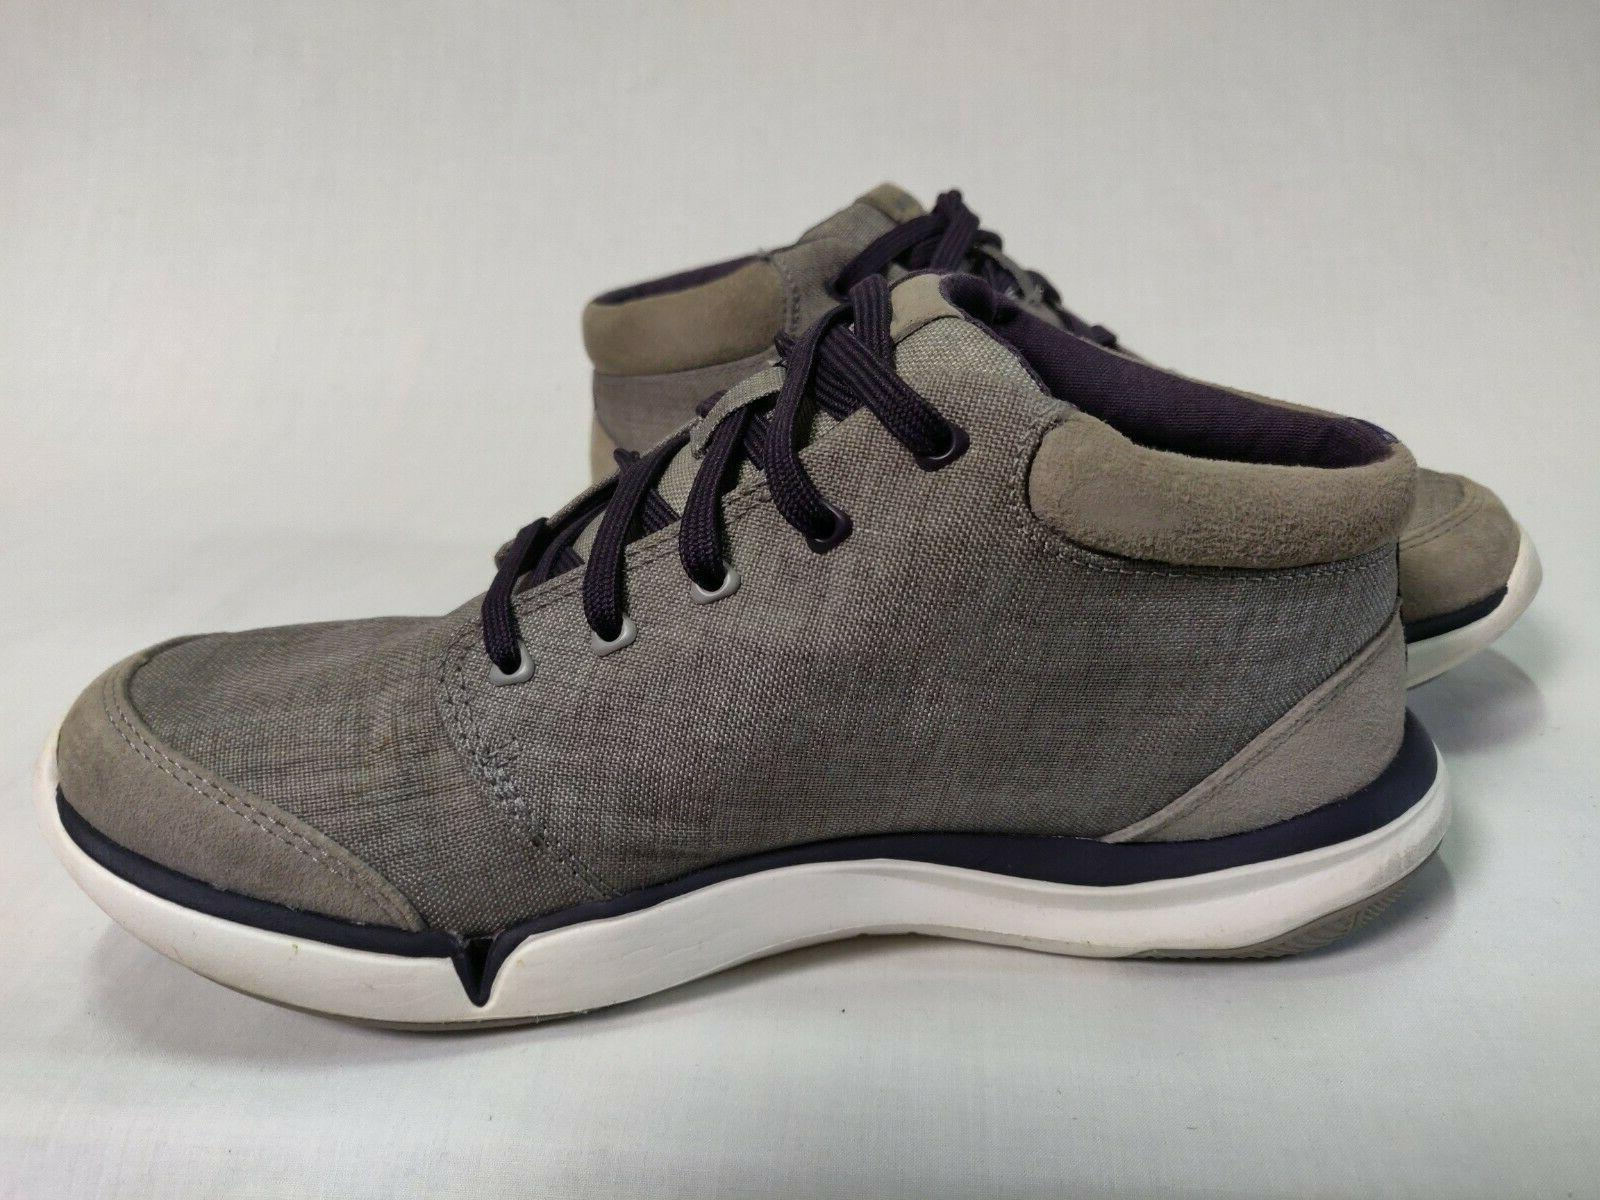 $60 Teva Women's Shoes Boots Canvas Gray Size